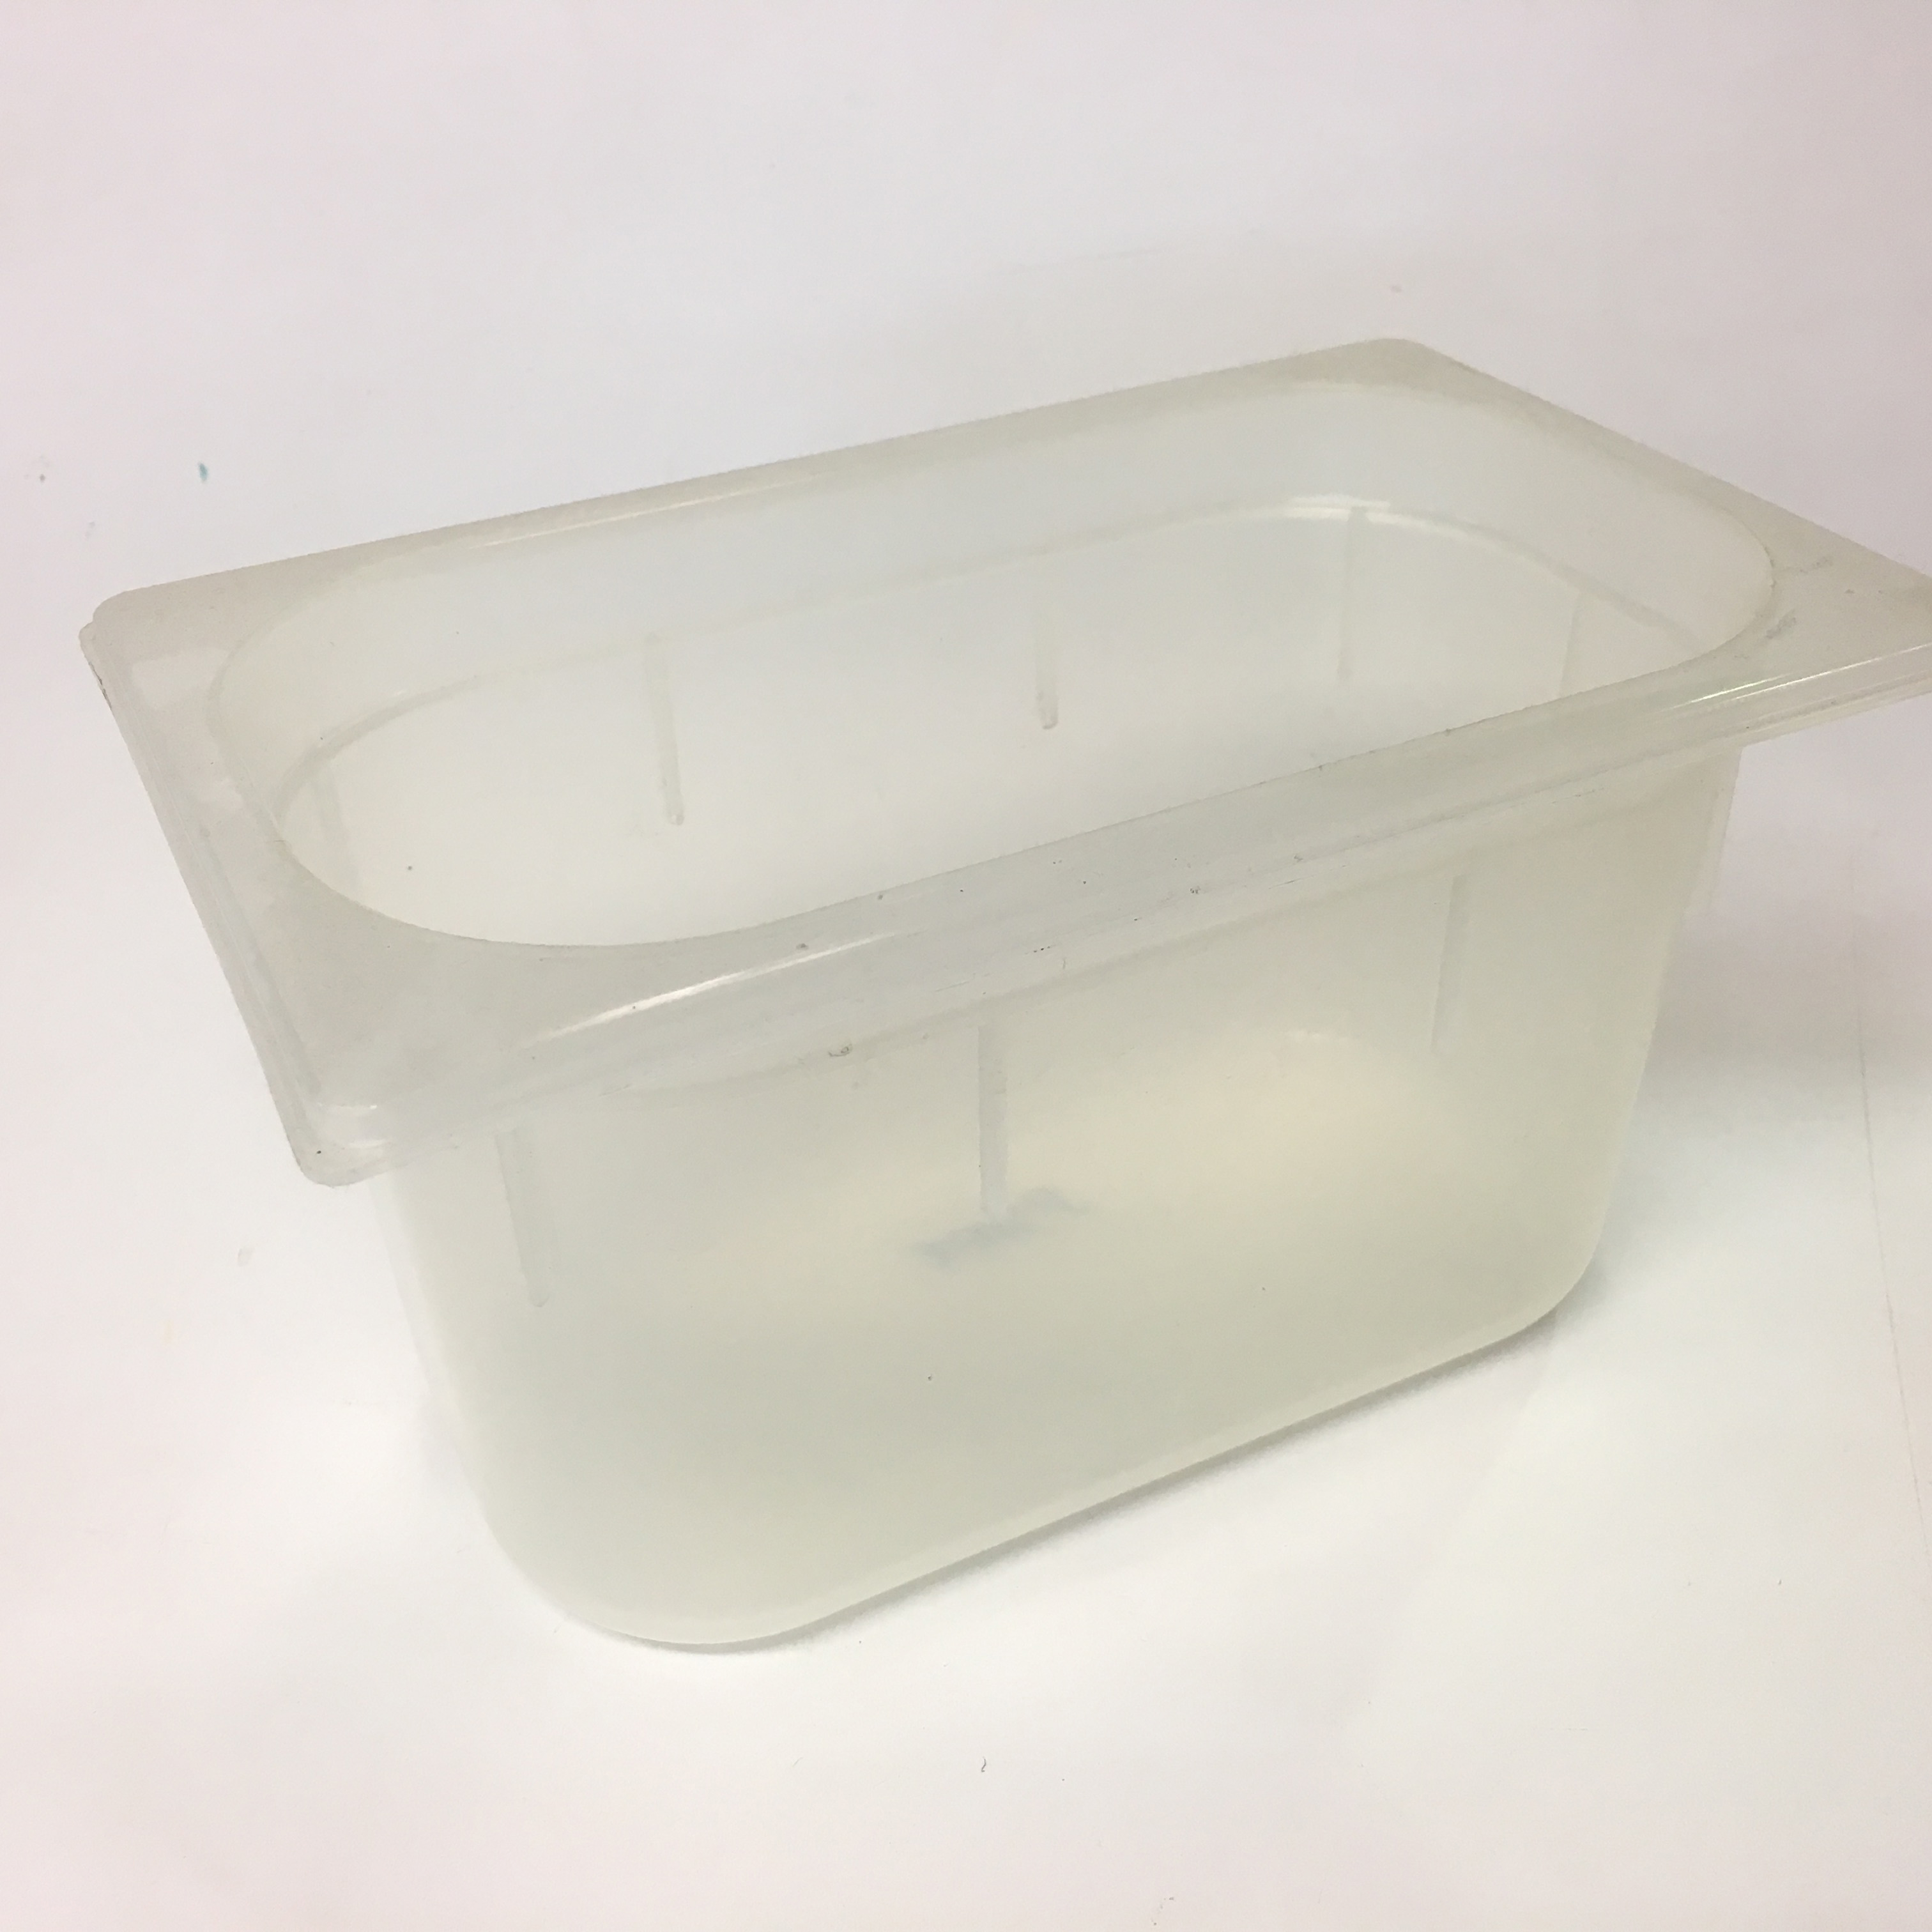 FOO0101 FOOD CONTAINER, Plastic $5